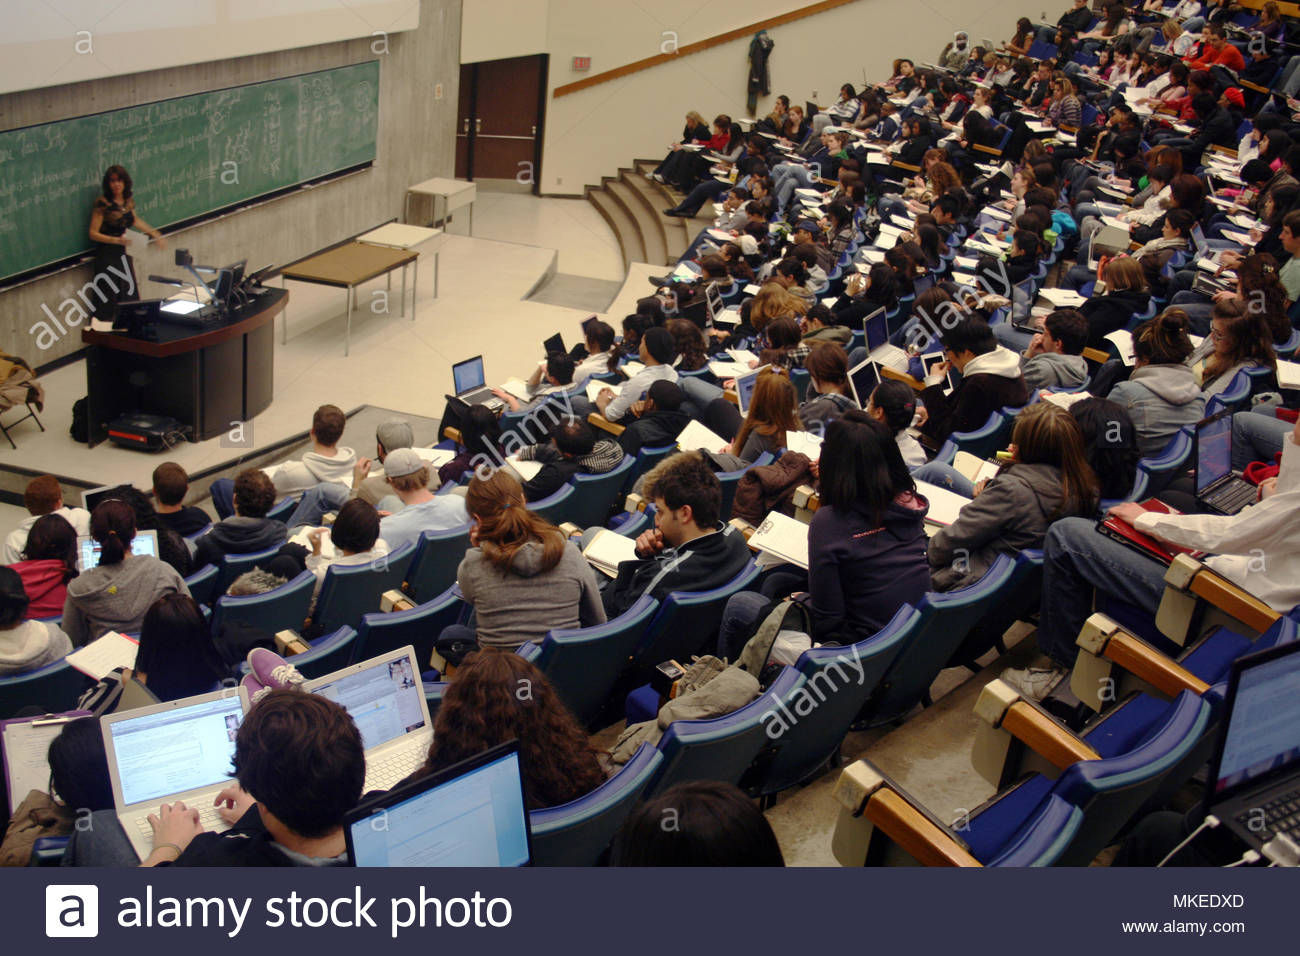 Students listen to a Proffessor teaching in a university lecture hall. - Stock Image